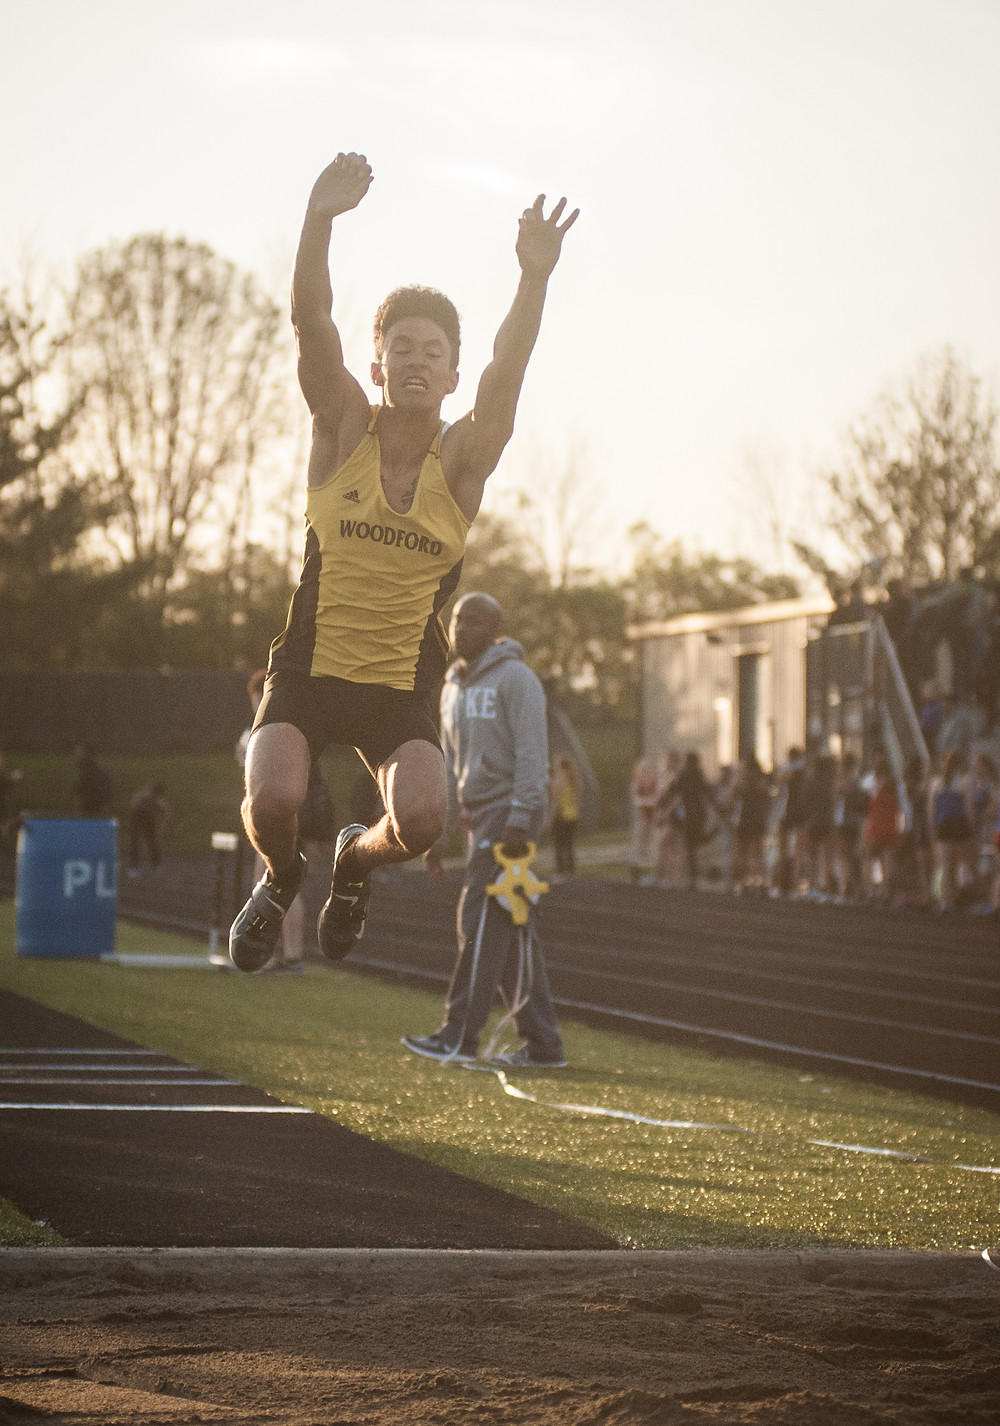 WCHS JUNIOR JORDAN UPTON won the boys' triple jump at the Dunbar All-Comers meet and The Newport River City Classic. (Photo by Bill Caine)